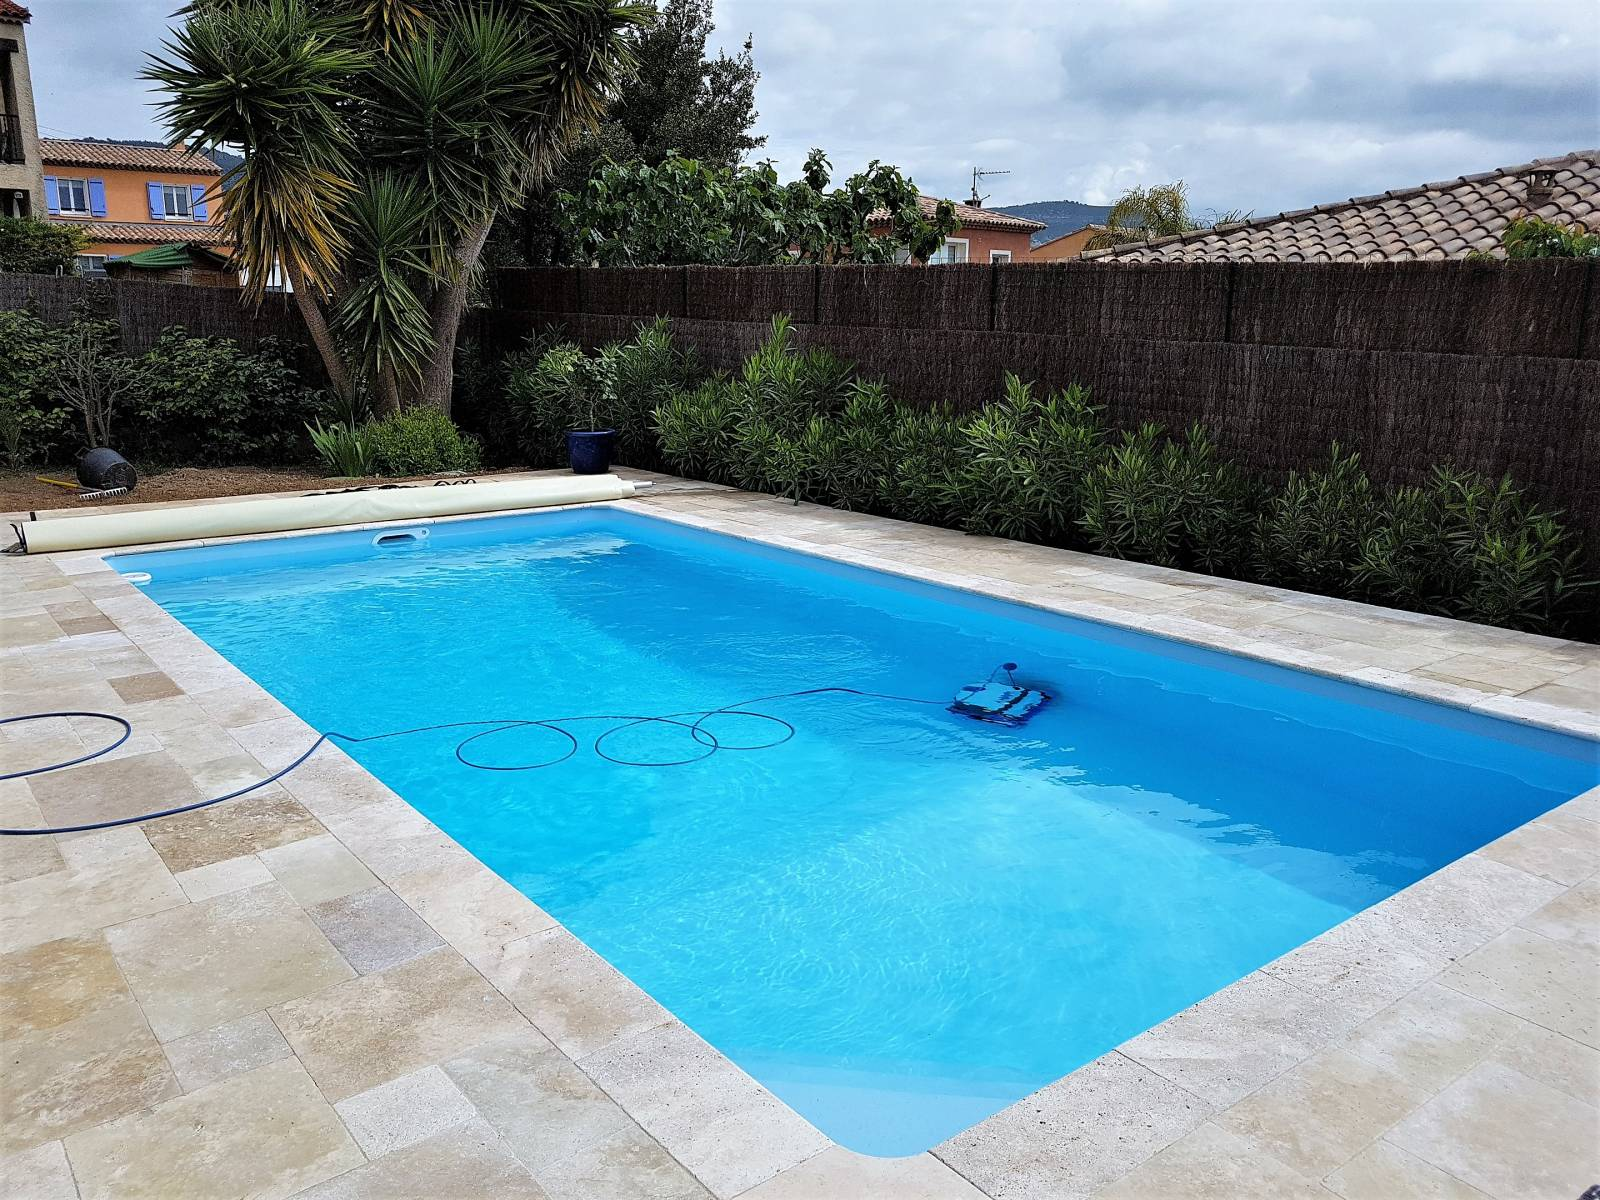 Plage en travertin multiformat jce piscines for Guide des piscines